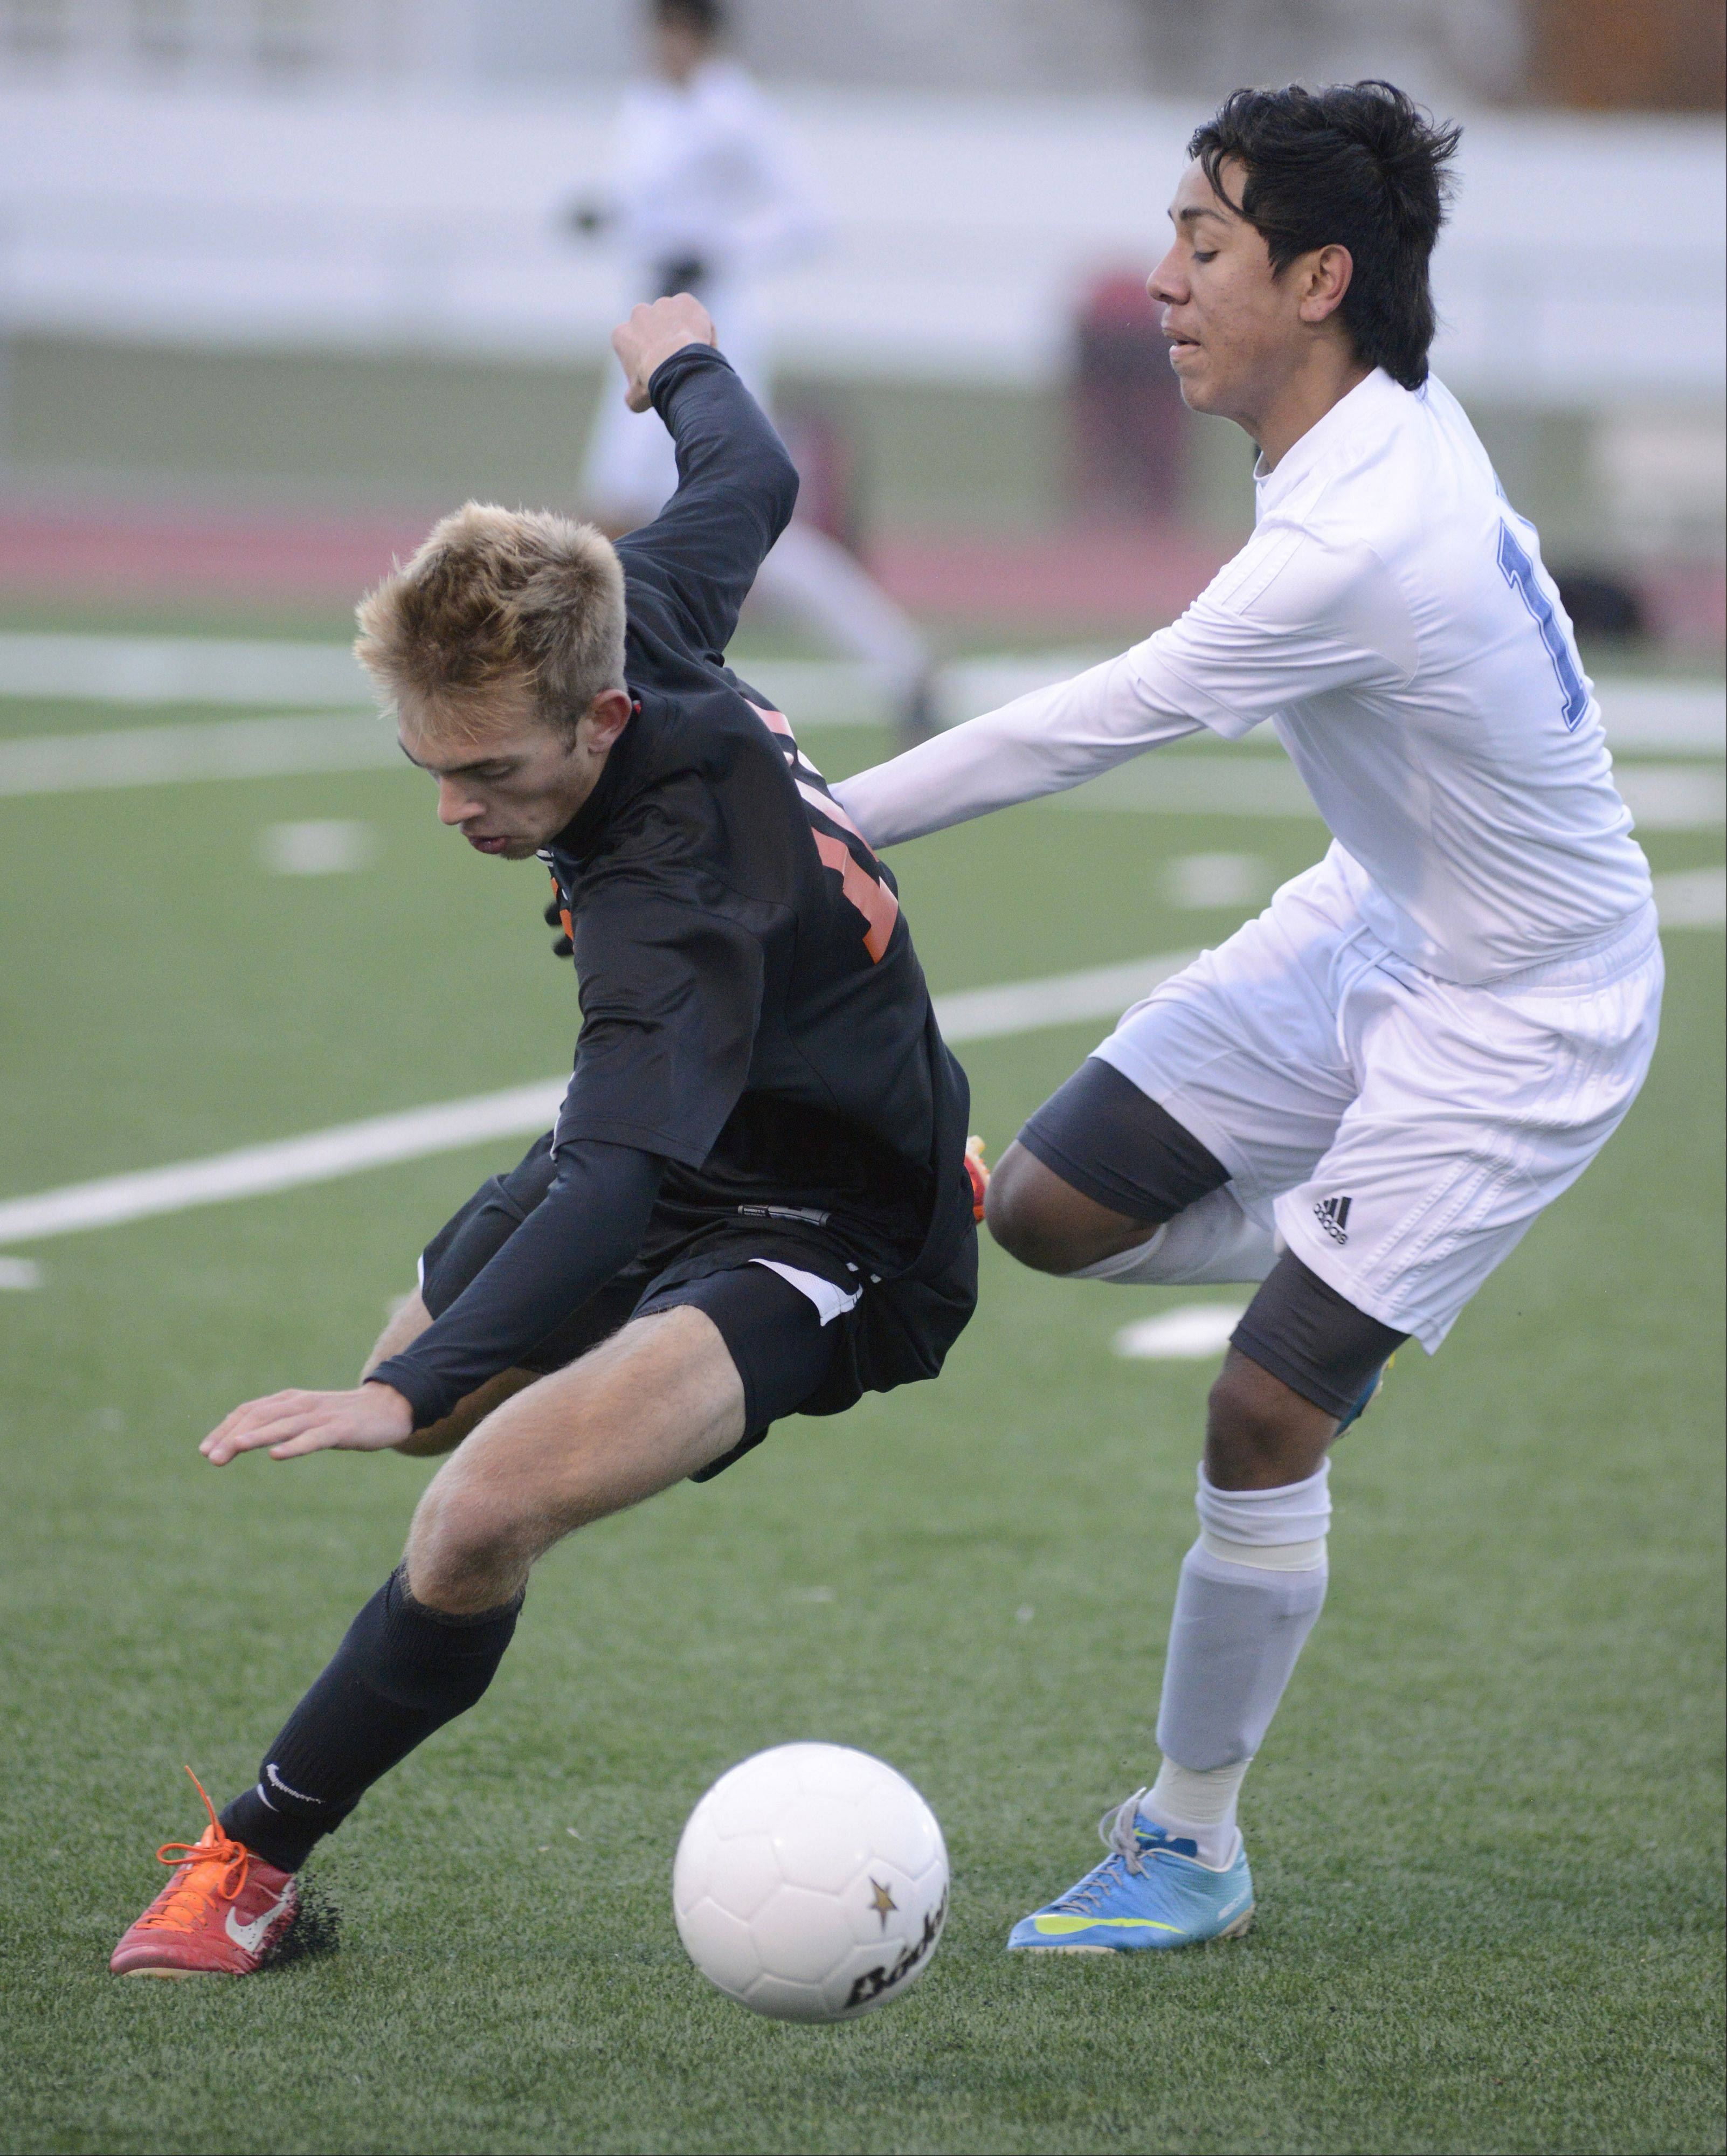 McHenry's Phil Shelton and Larkin's Ricardo Nava fight for the ball, with Shelton going down in the first half of the Class 3A sectional championship at Huntley High School on Saturday, November 2.